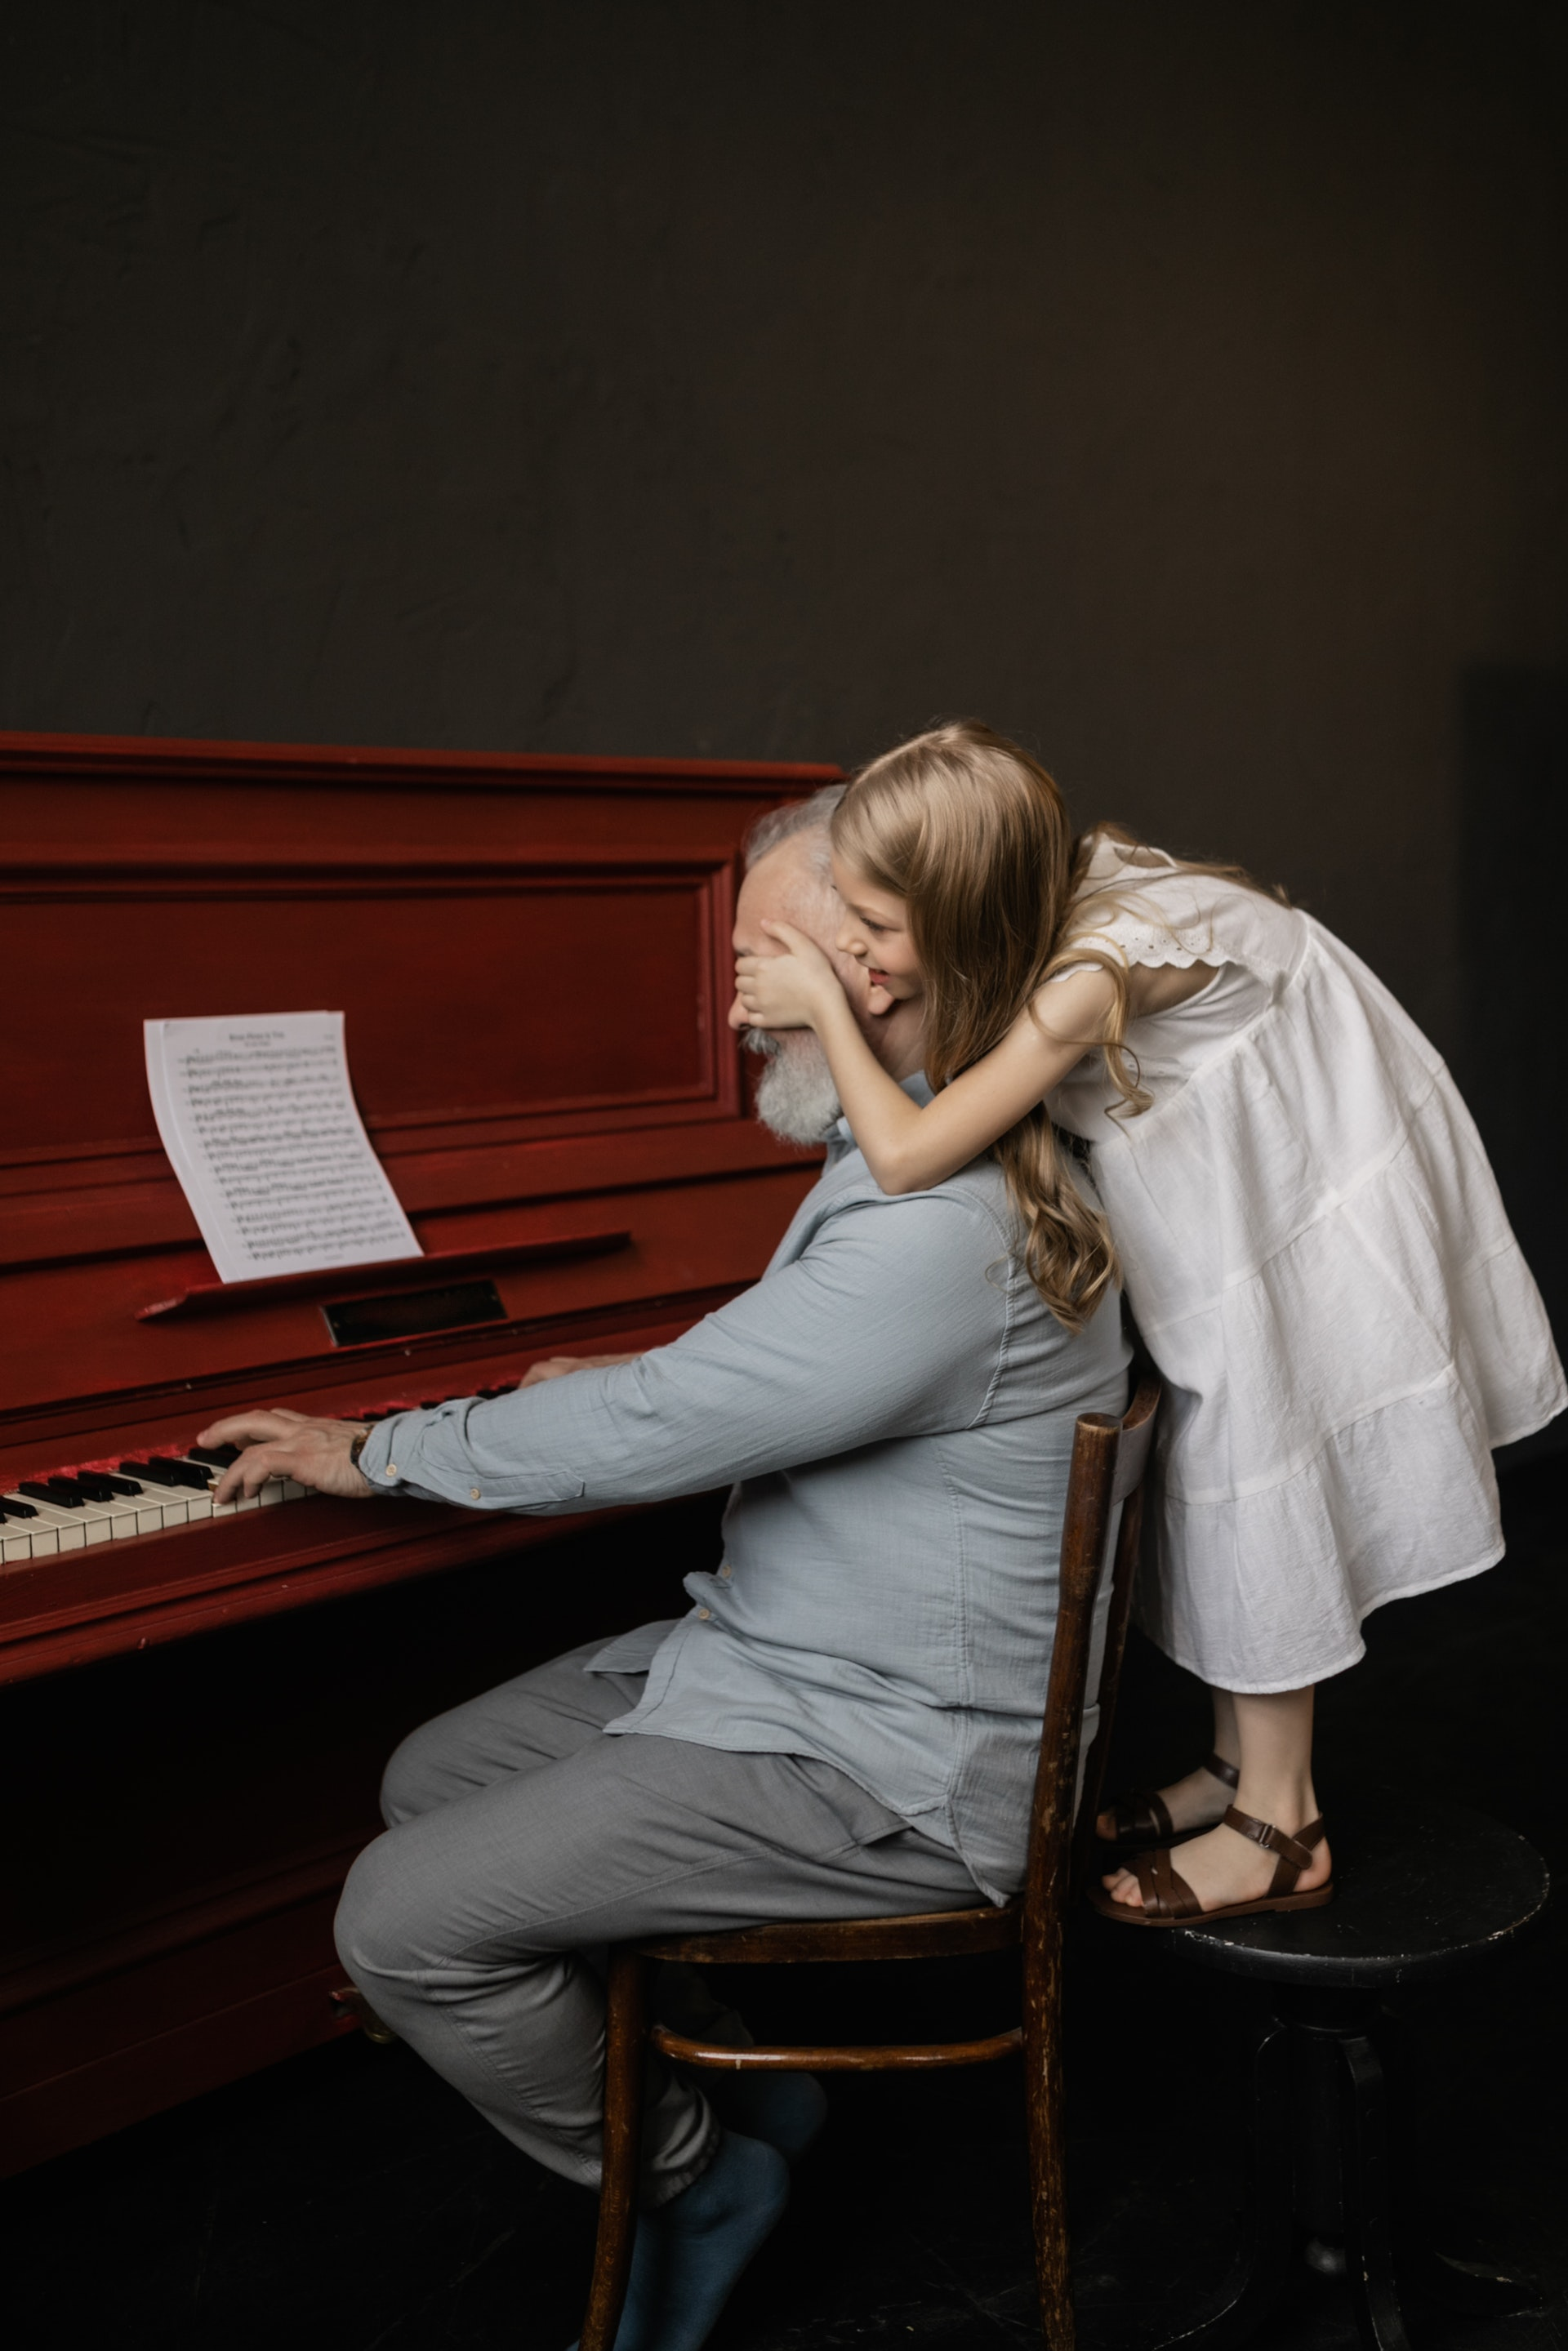 Old man with white beard plays piano with young girl in white dress behind him standing on a stool covering his eyes with her hands.